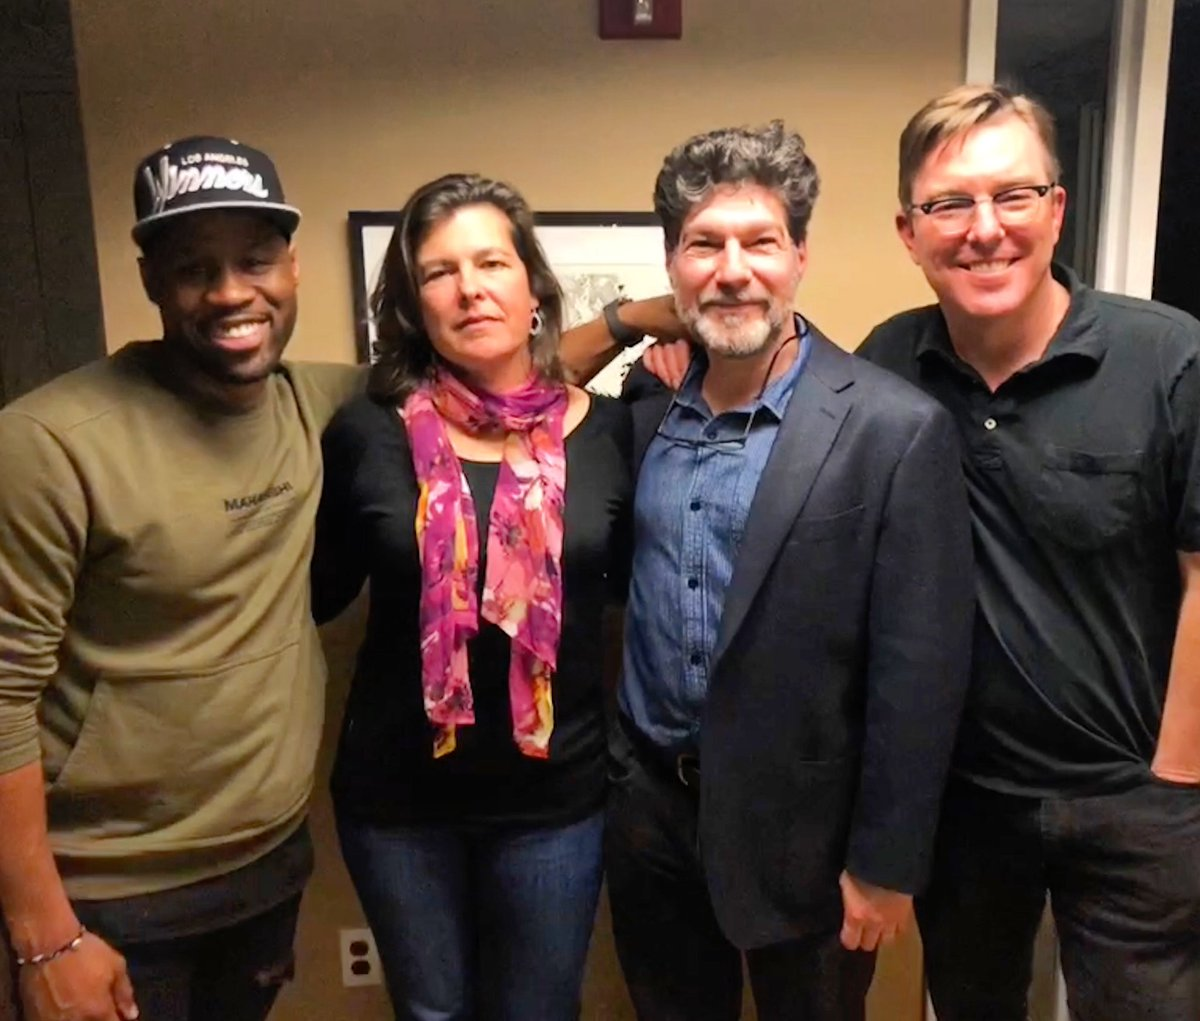 Kmele Foster, Heather Heying, Bret Weinstein, Matt Welch ||| Anthony L. Fisher